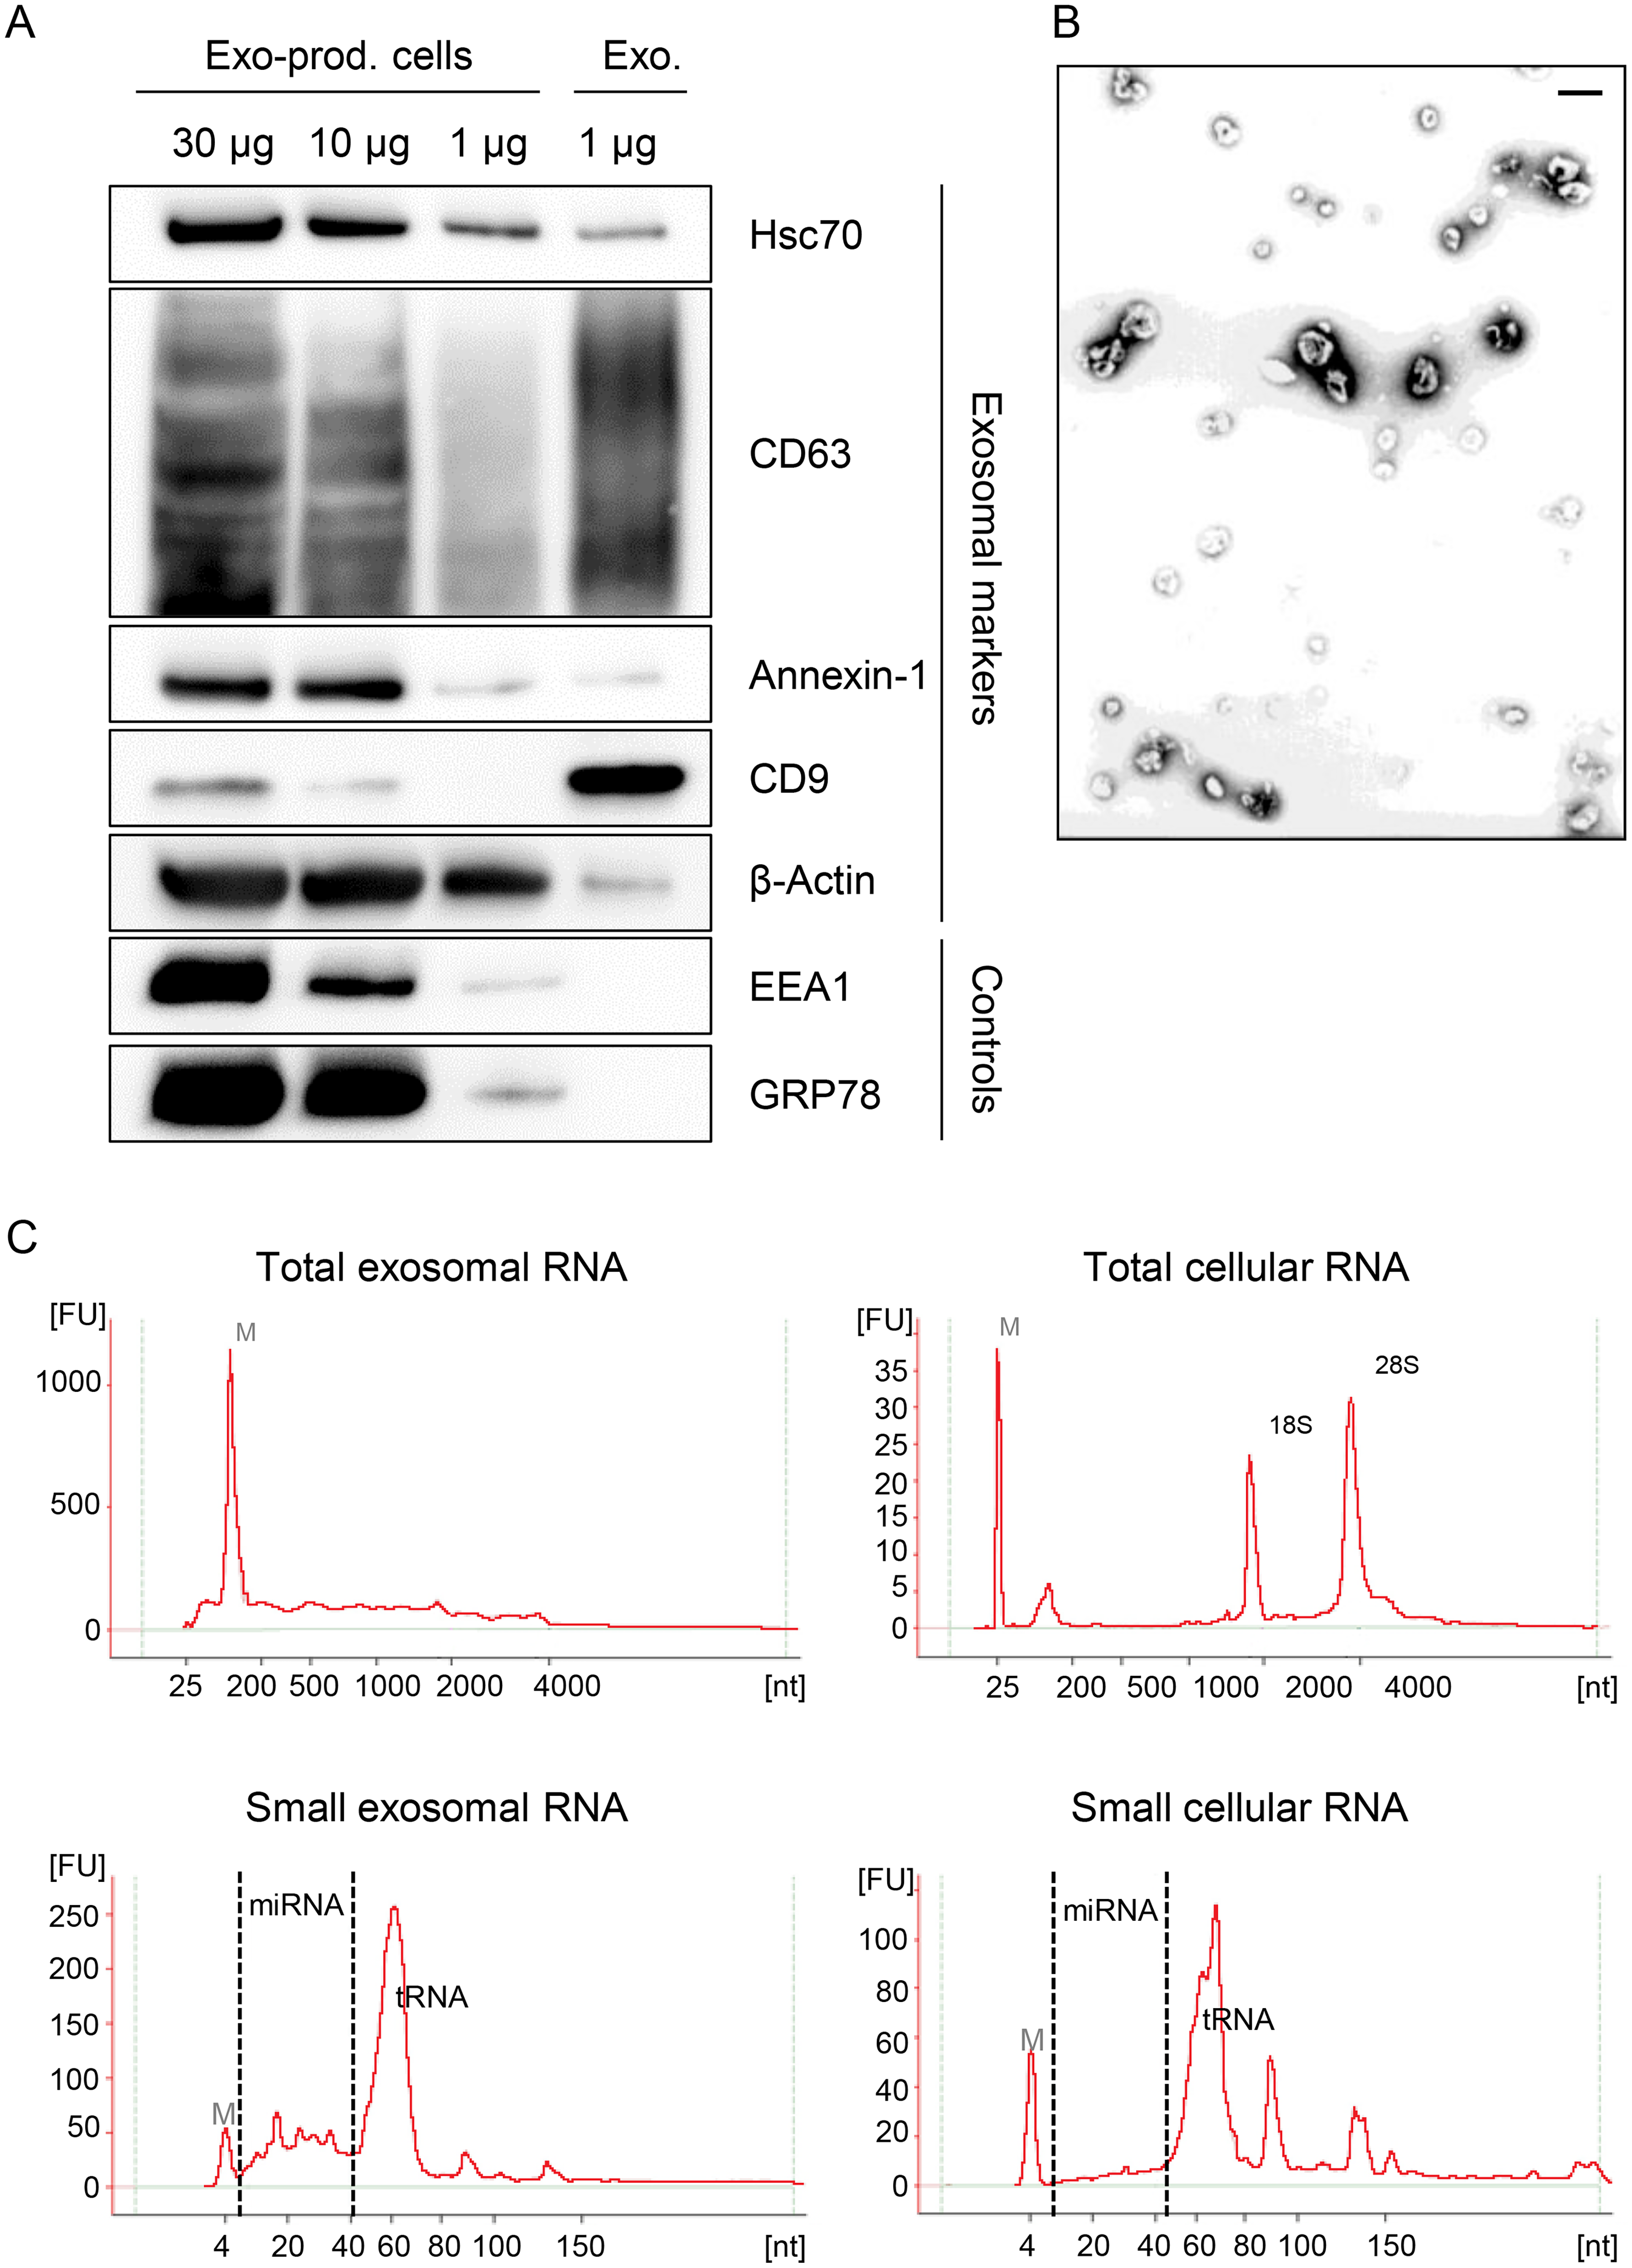 Characterization of exosomes secreted by HeLa cells used for small RNA deep sequencing.